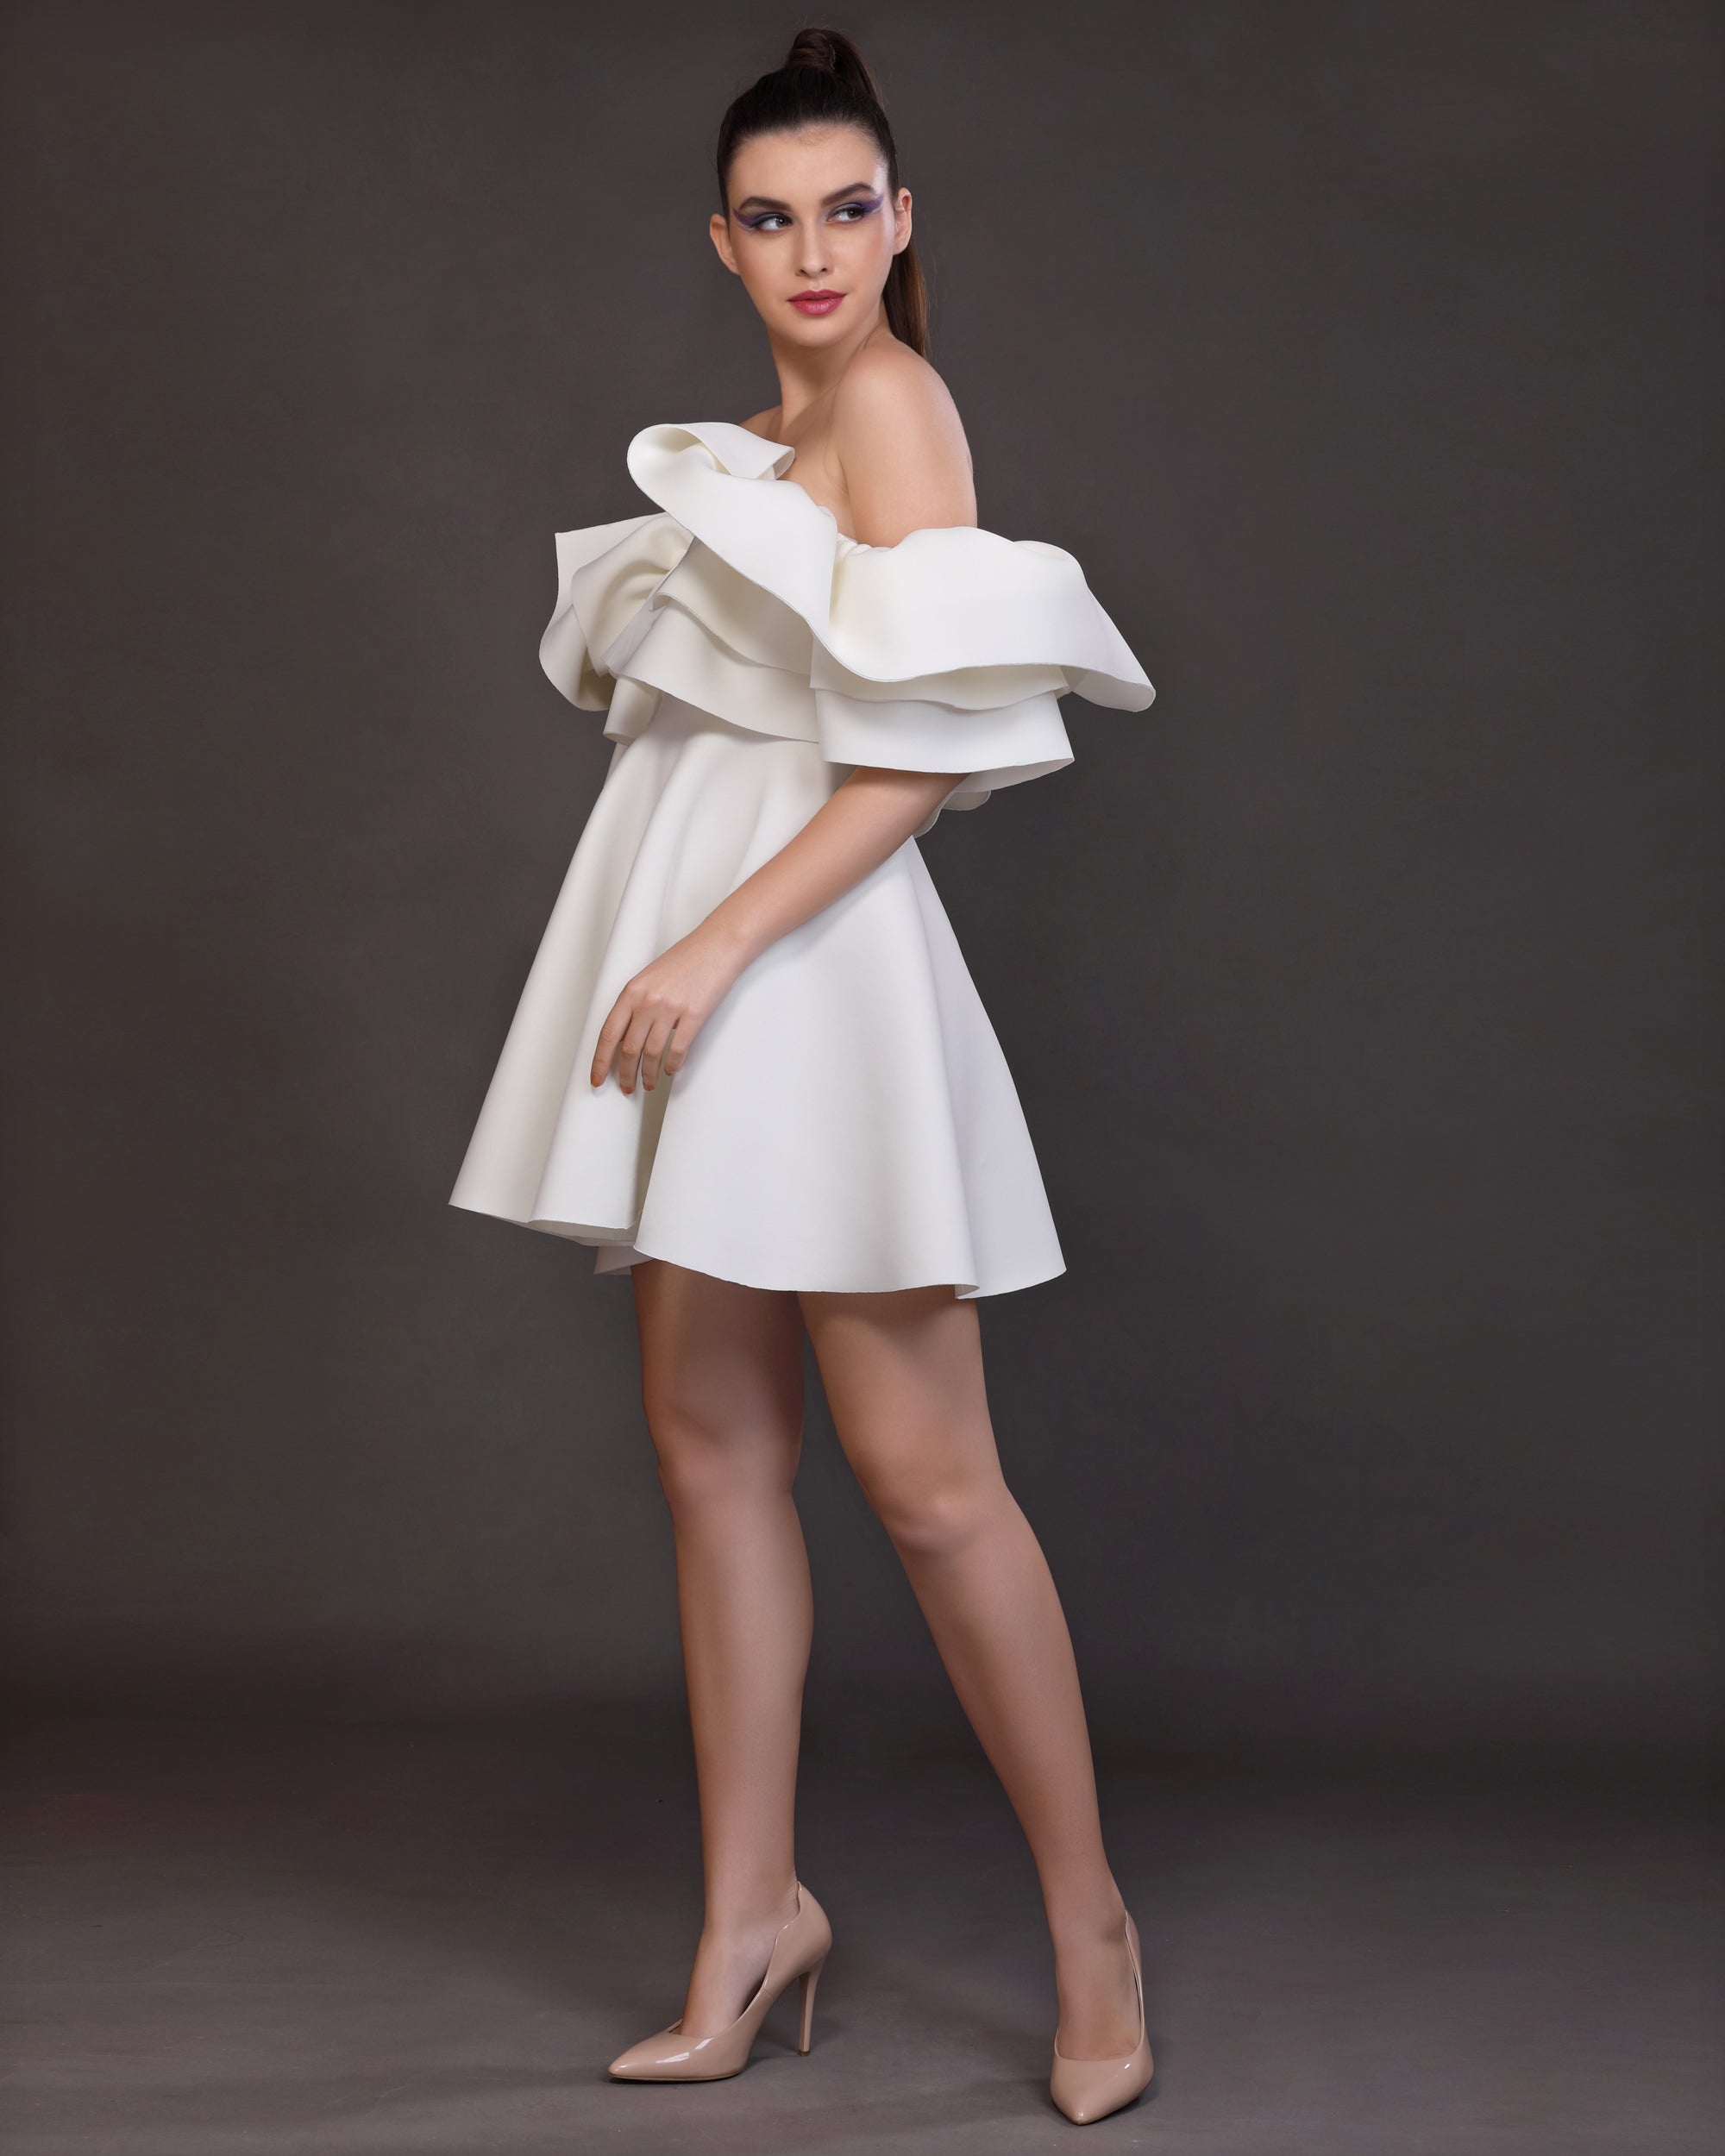 Essence- Exaggerated shoulder frills